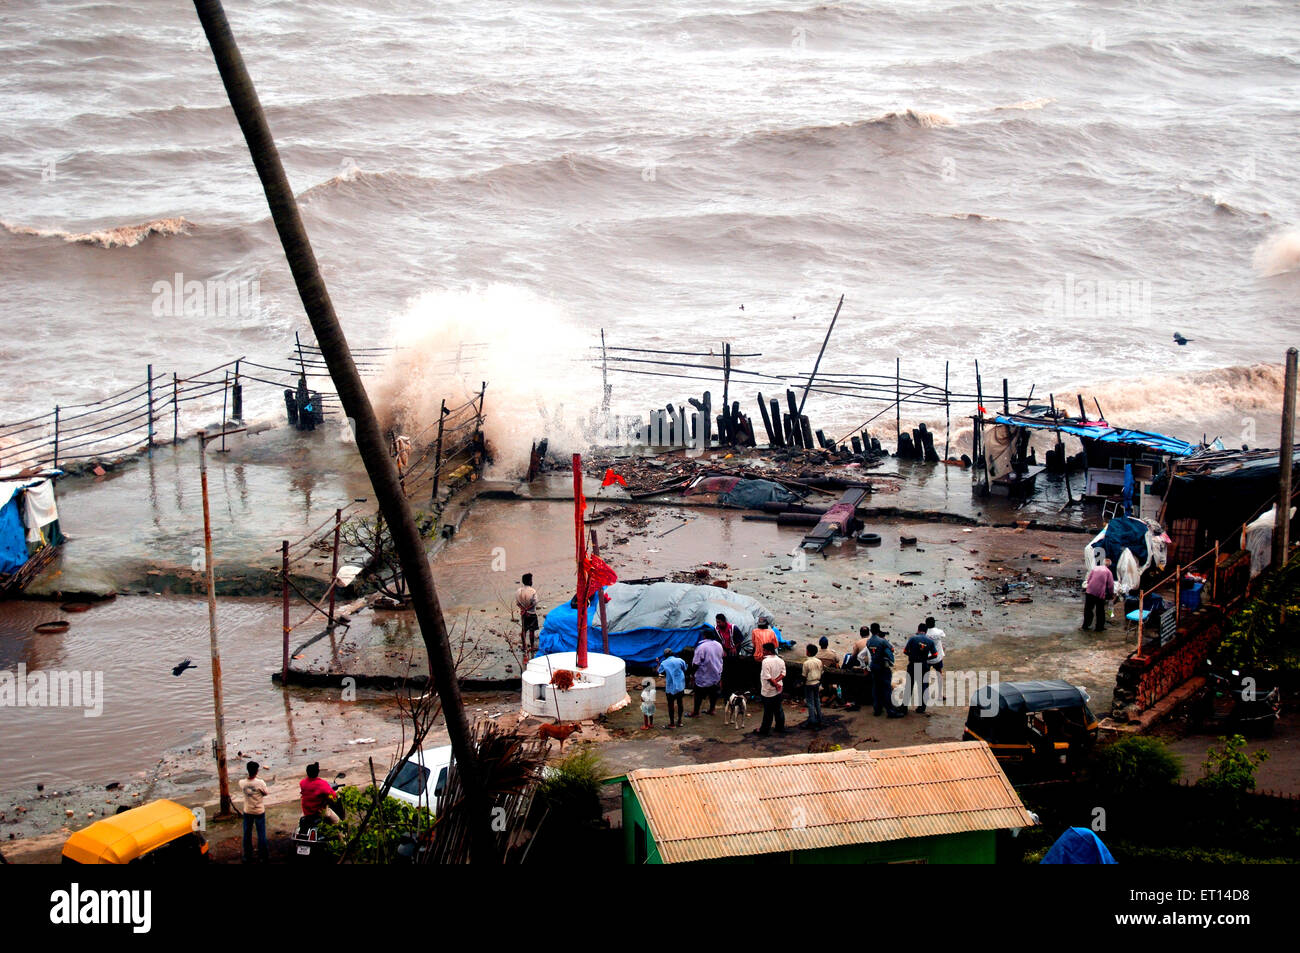 High tide destruction mumbai India - Stock Image